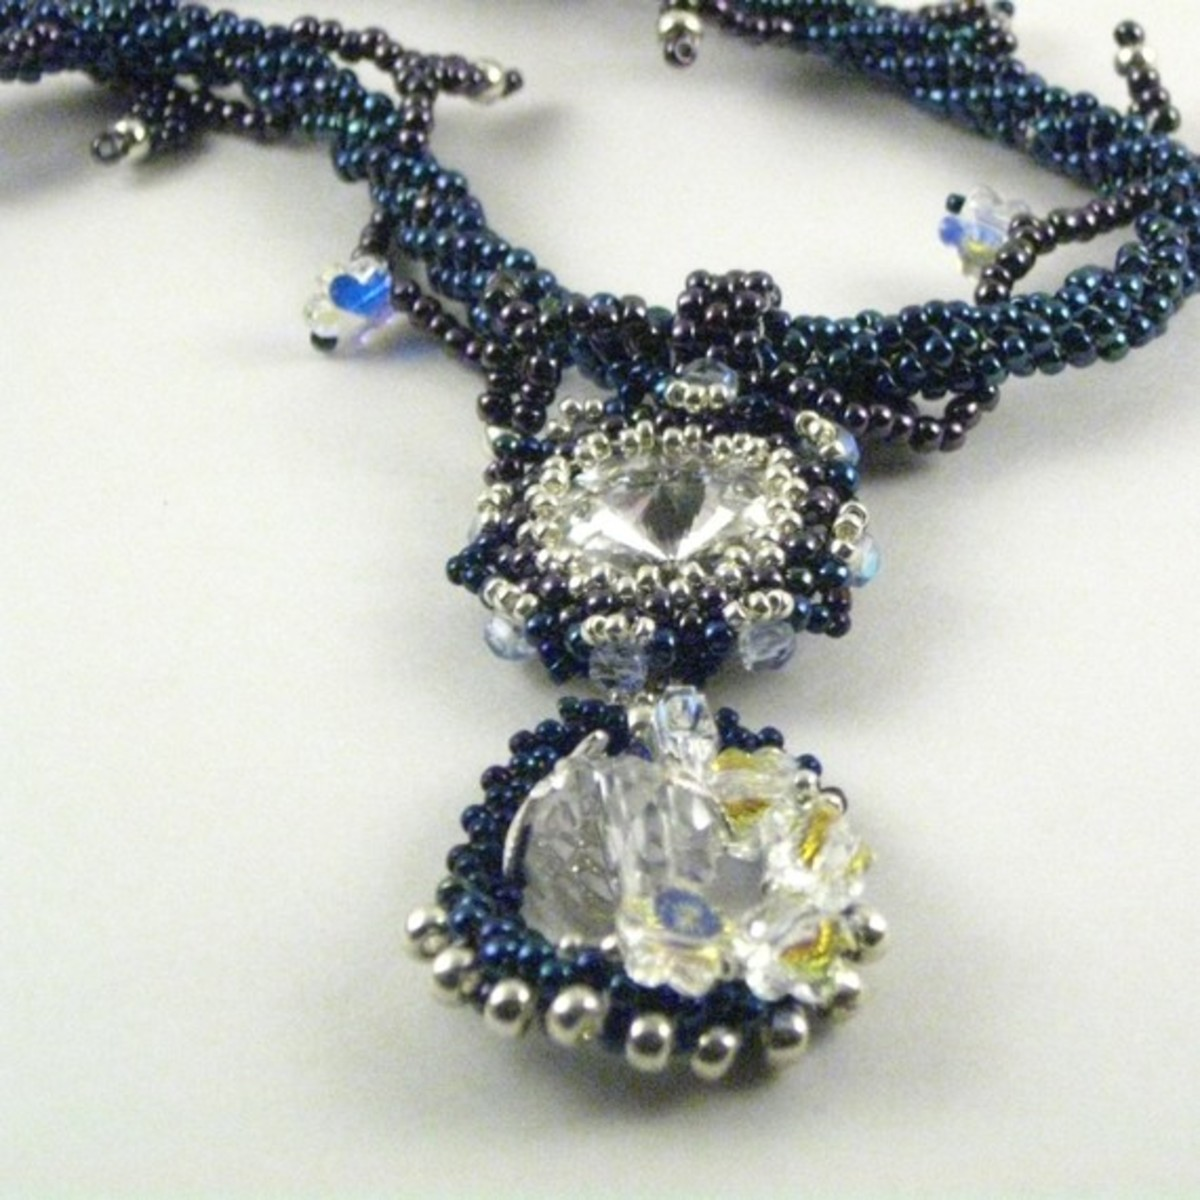 Navy Teardrop Pendant Necklace with Swarovski Crystals